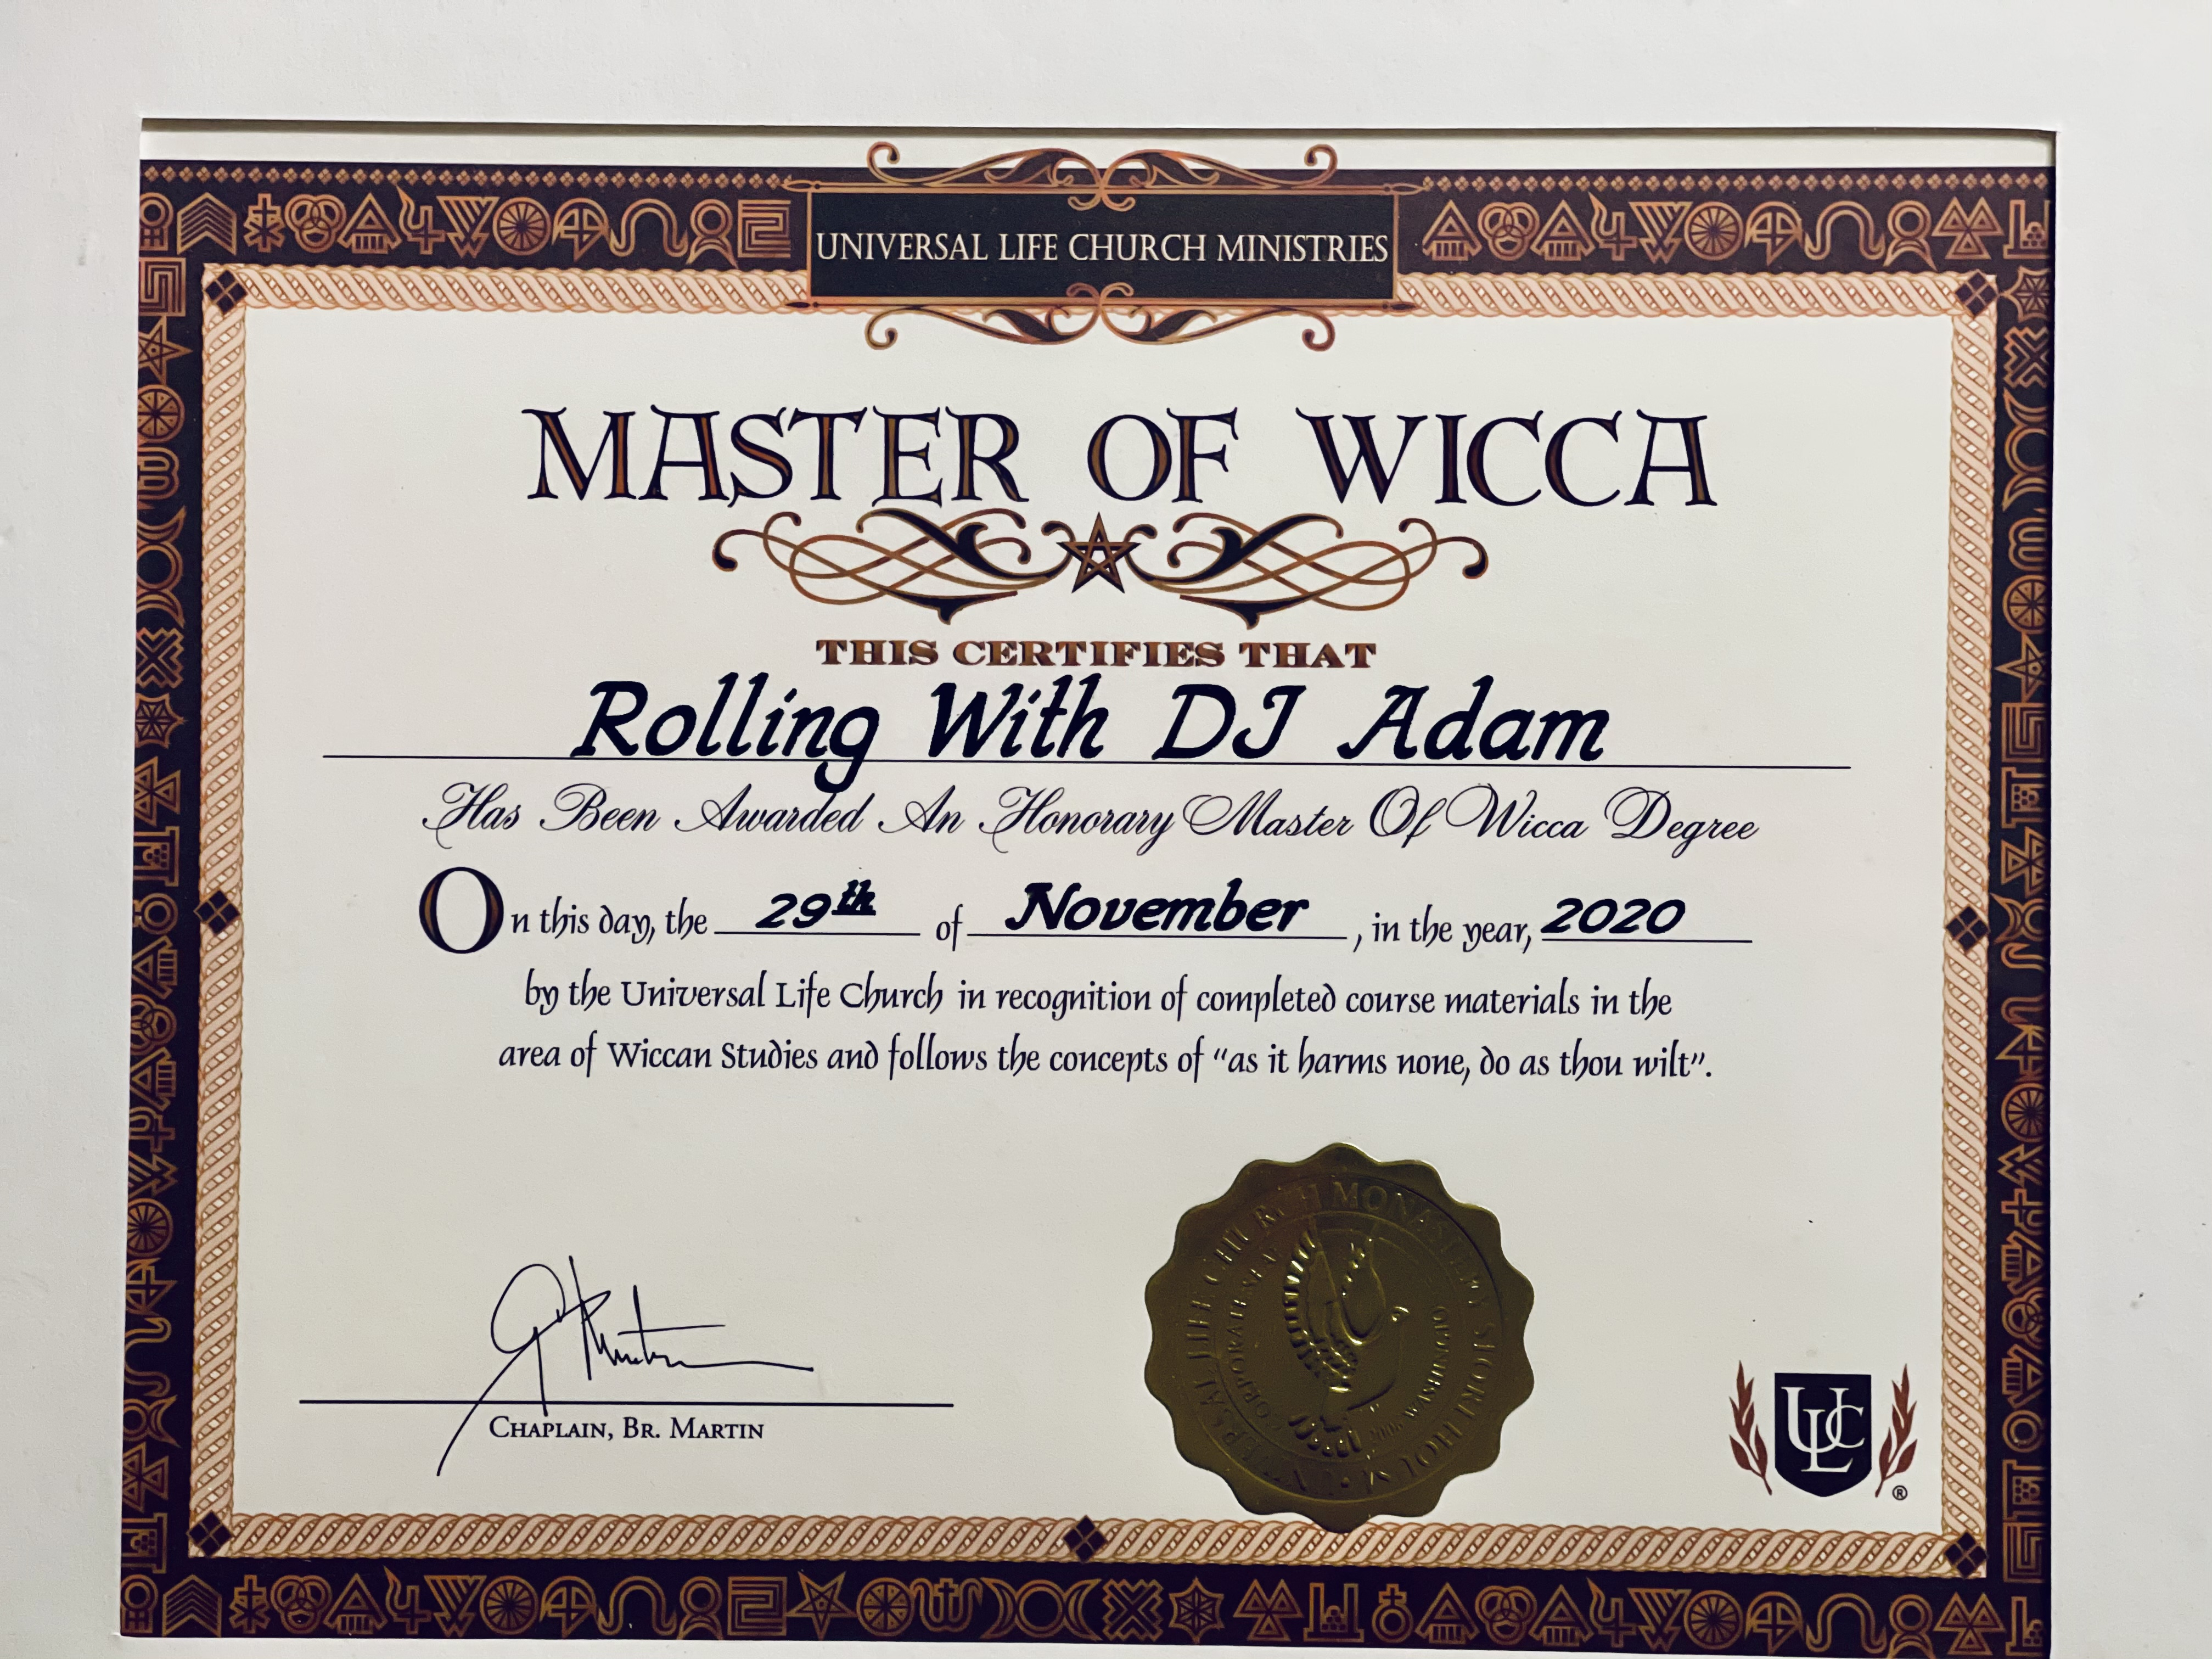 Master of Wicca Certificate